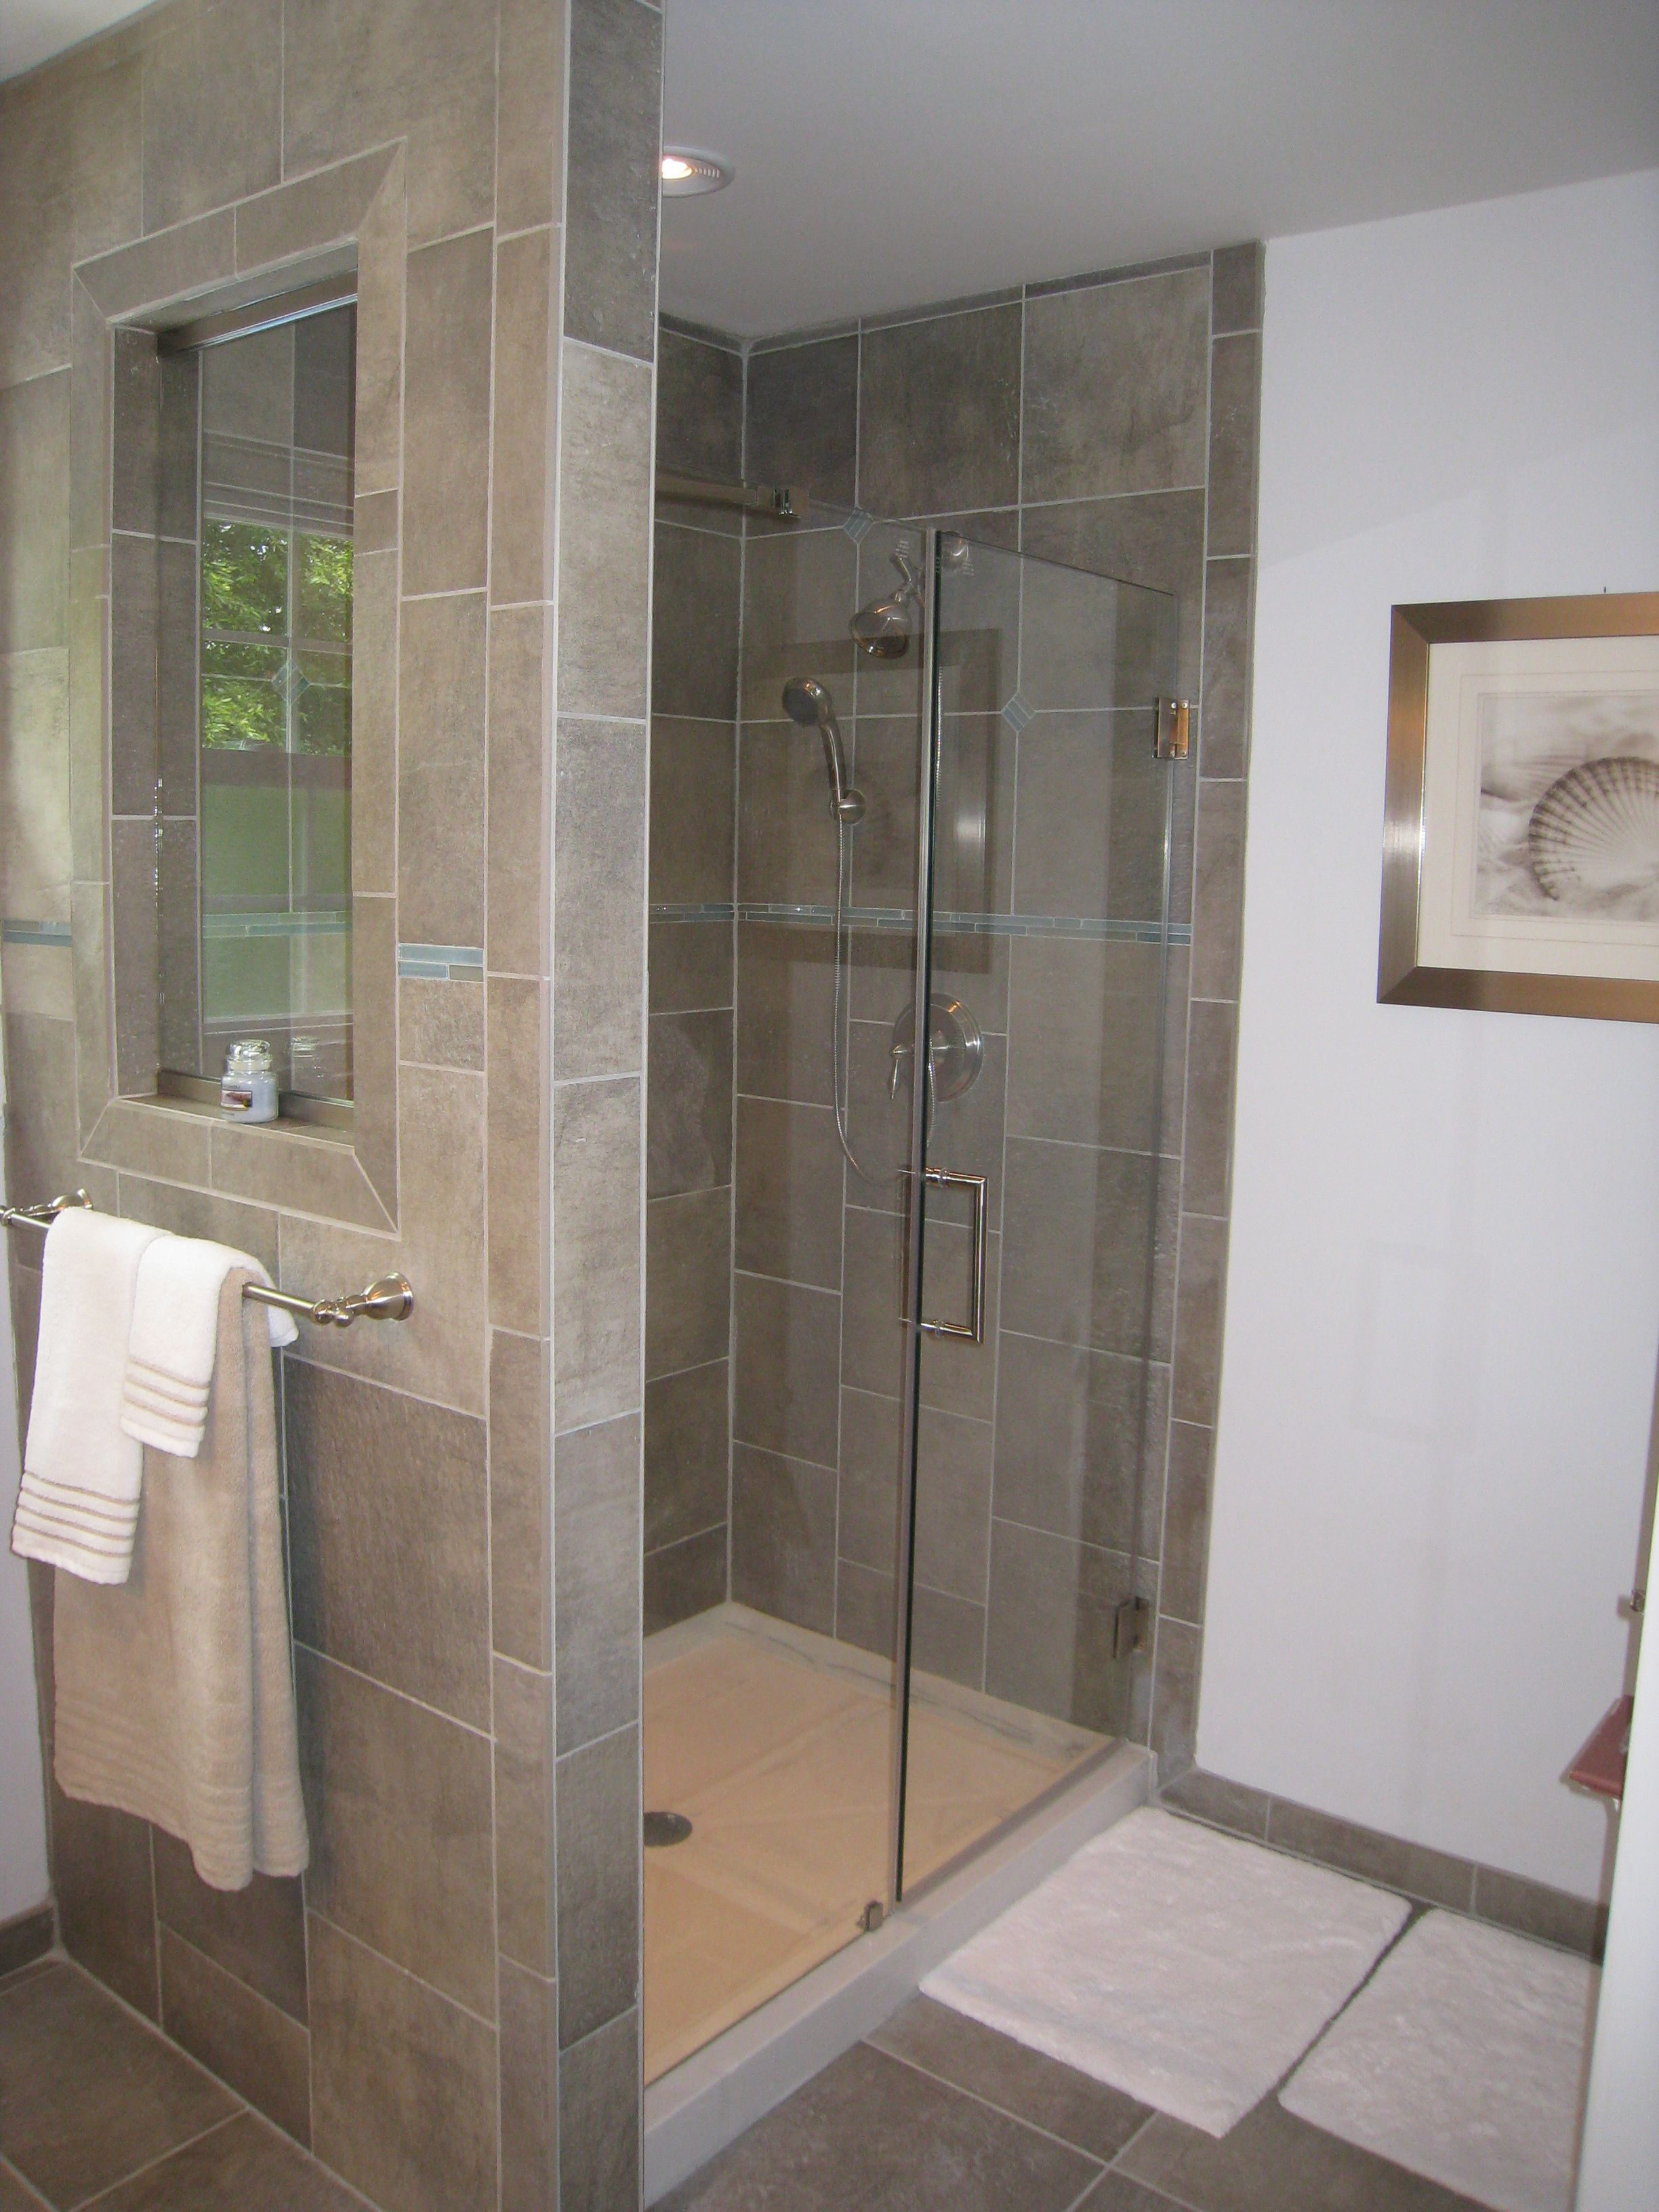 Bathroom Remodeling Gallery Bucks County PA Bath Design FINE - Bathroom remodeling bucks county pa